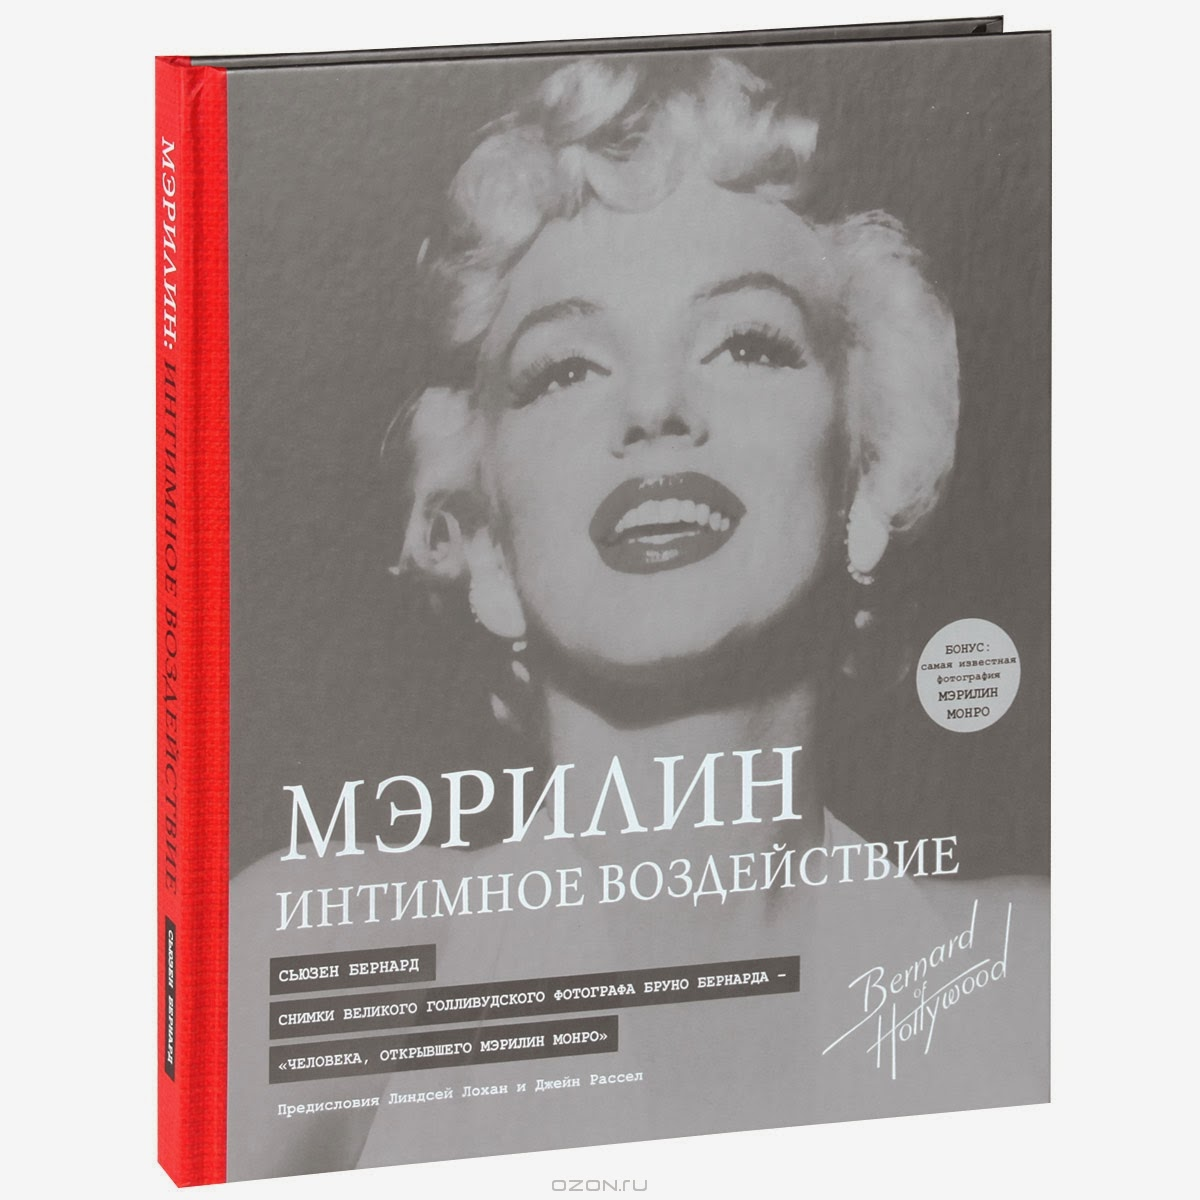 the sanity of marilyn monroe in the secret life of marilyn monroe a book by j randy taraborrelli Download the secret life of marilyn monroe audiobook click for printable size audiobook cover 300 (1,642 ratings) (rate this audio book) author: j randy.